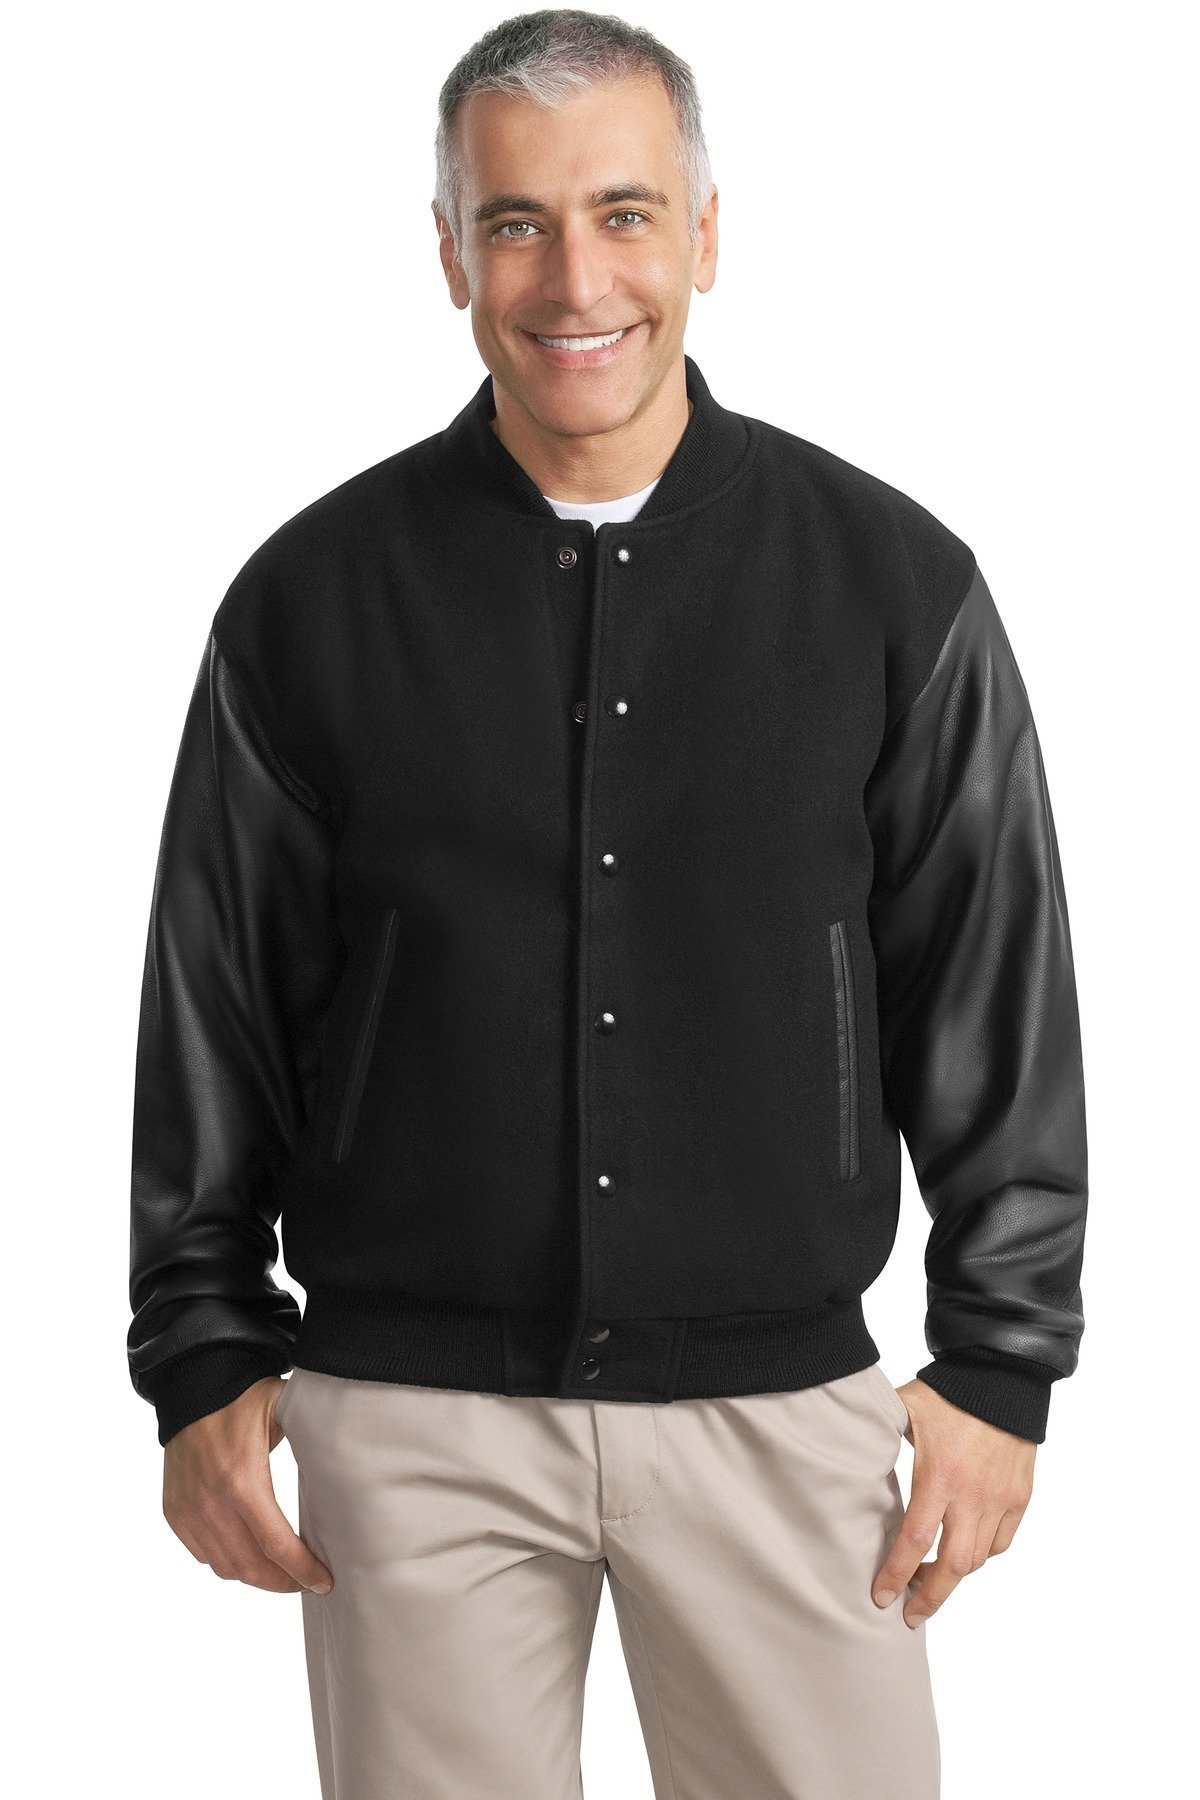 Port Authority Men's Port Authority Wool and Leather Letterman XS Black/Black